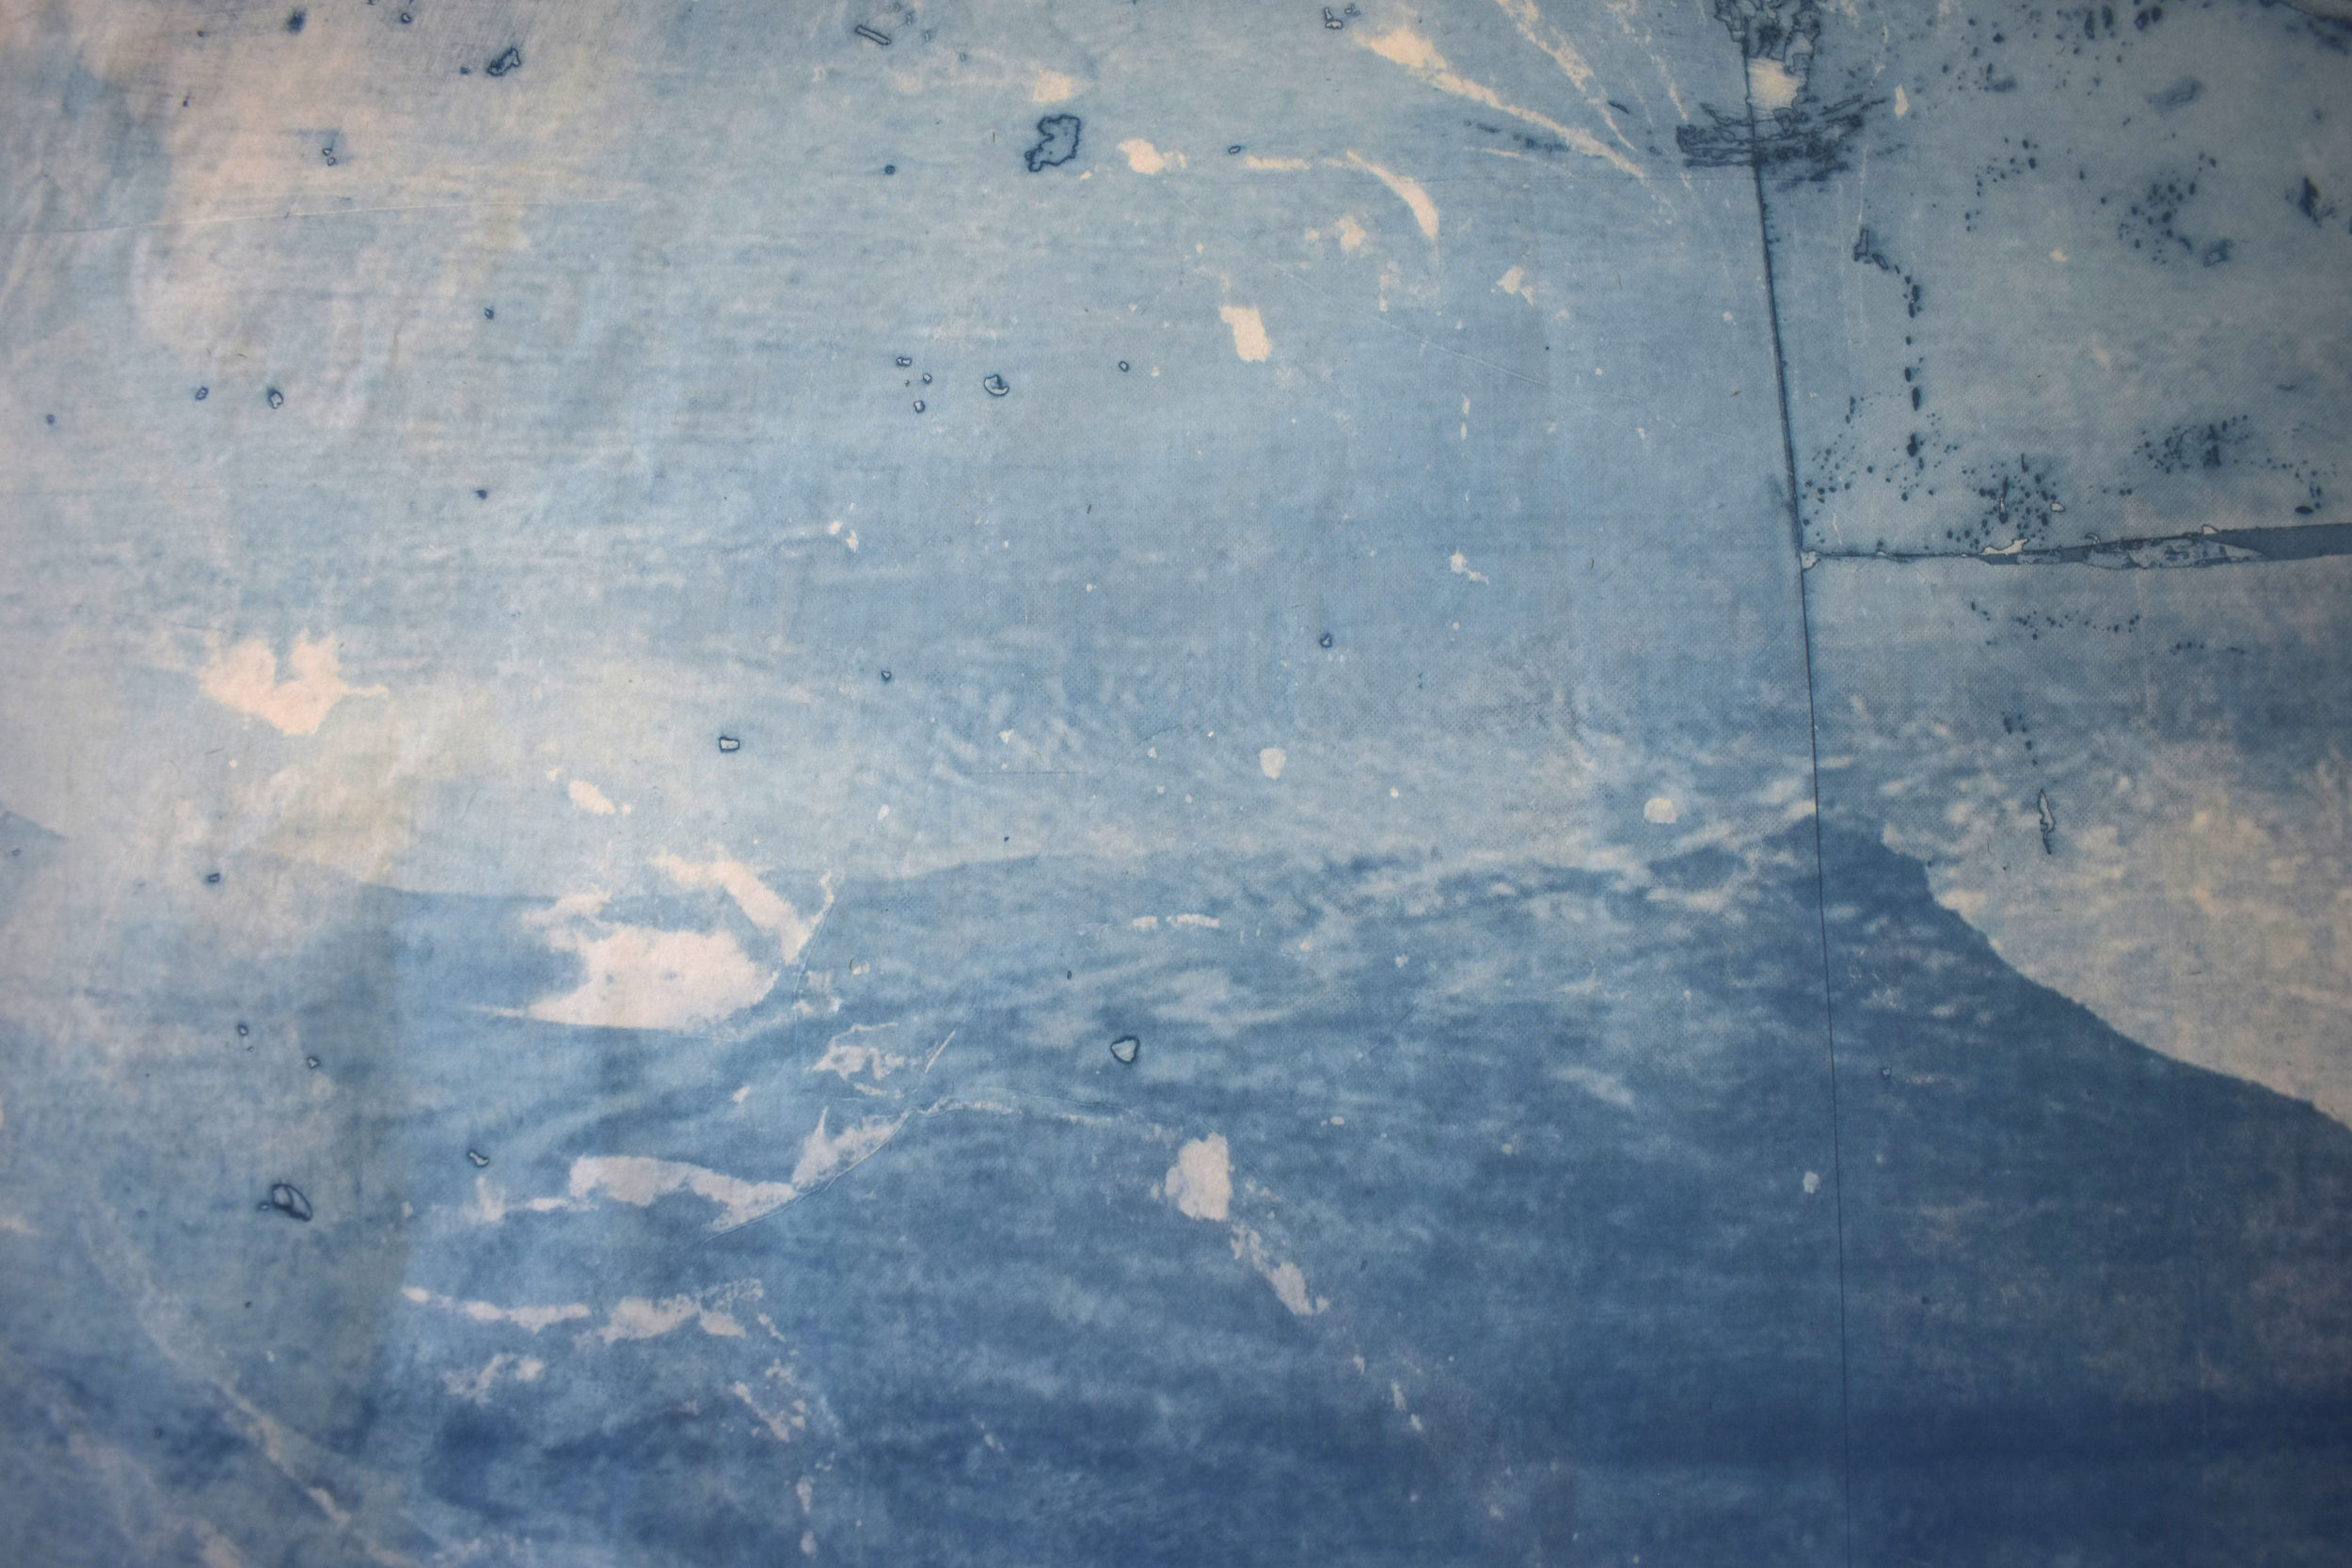 Over and Under (Whirlpool),  No. 5, detail